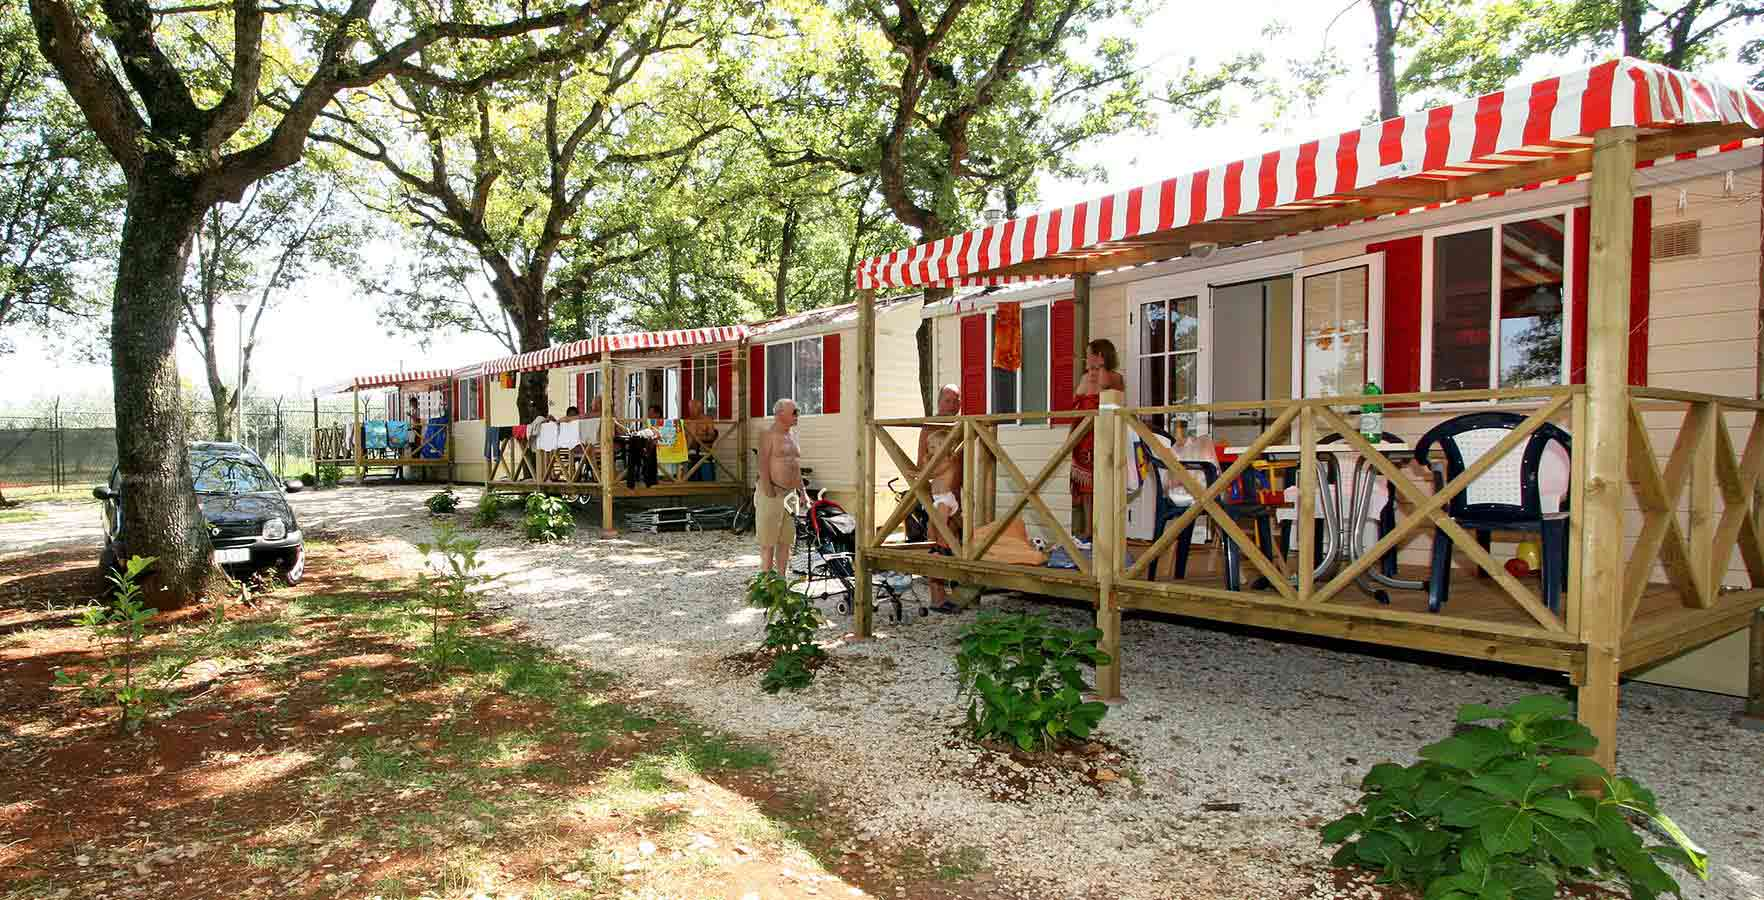 Campsite Ulika - mobile homes